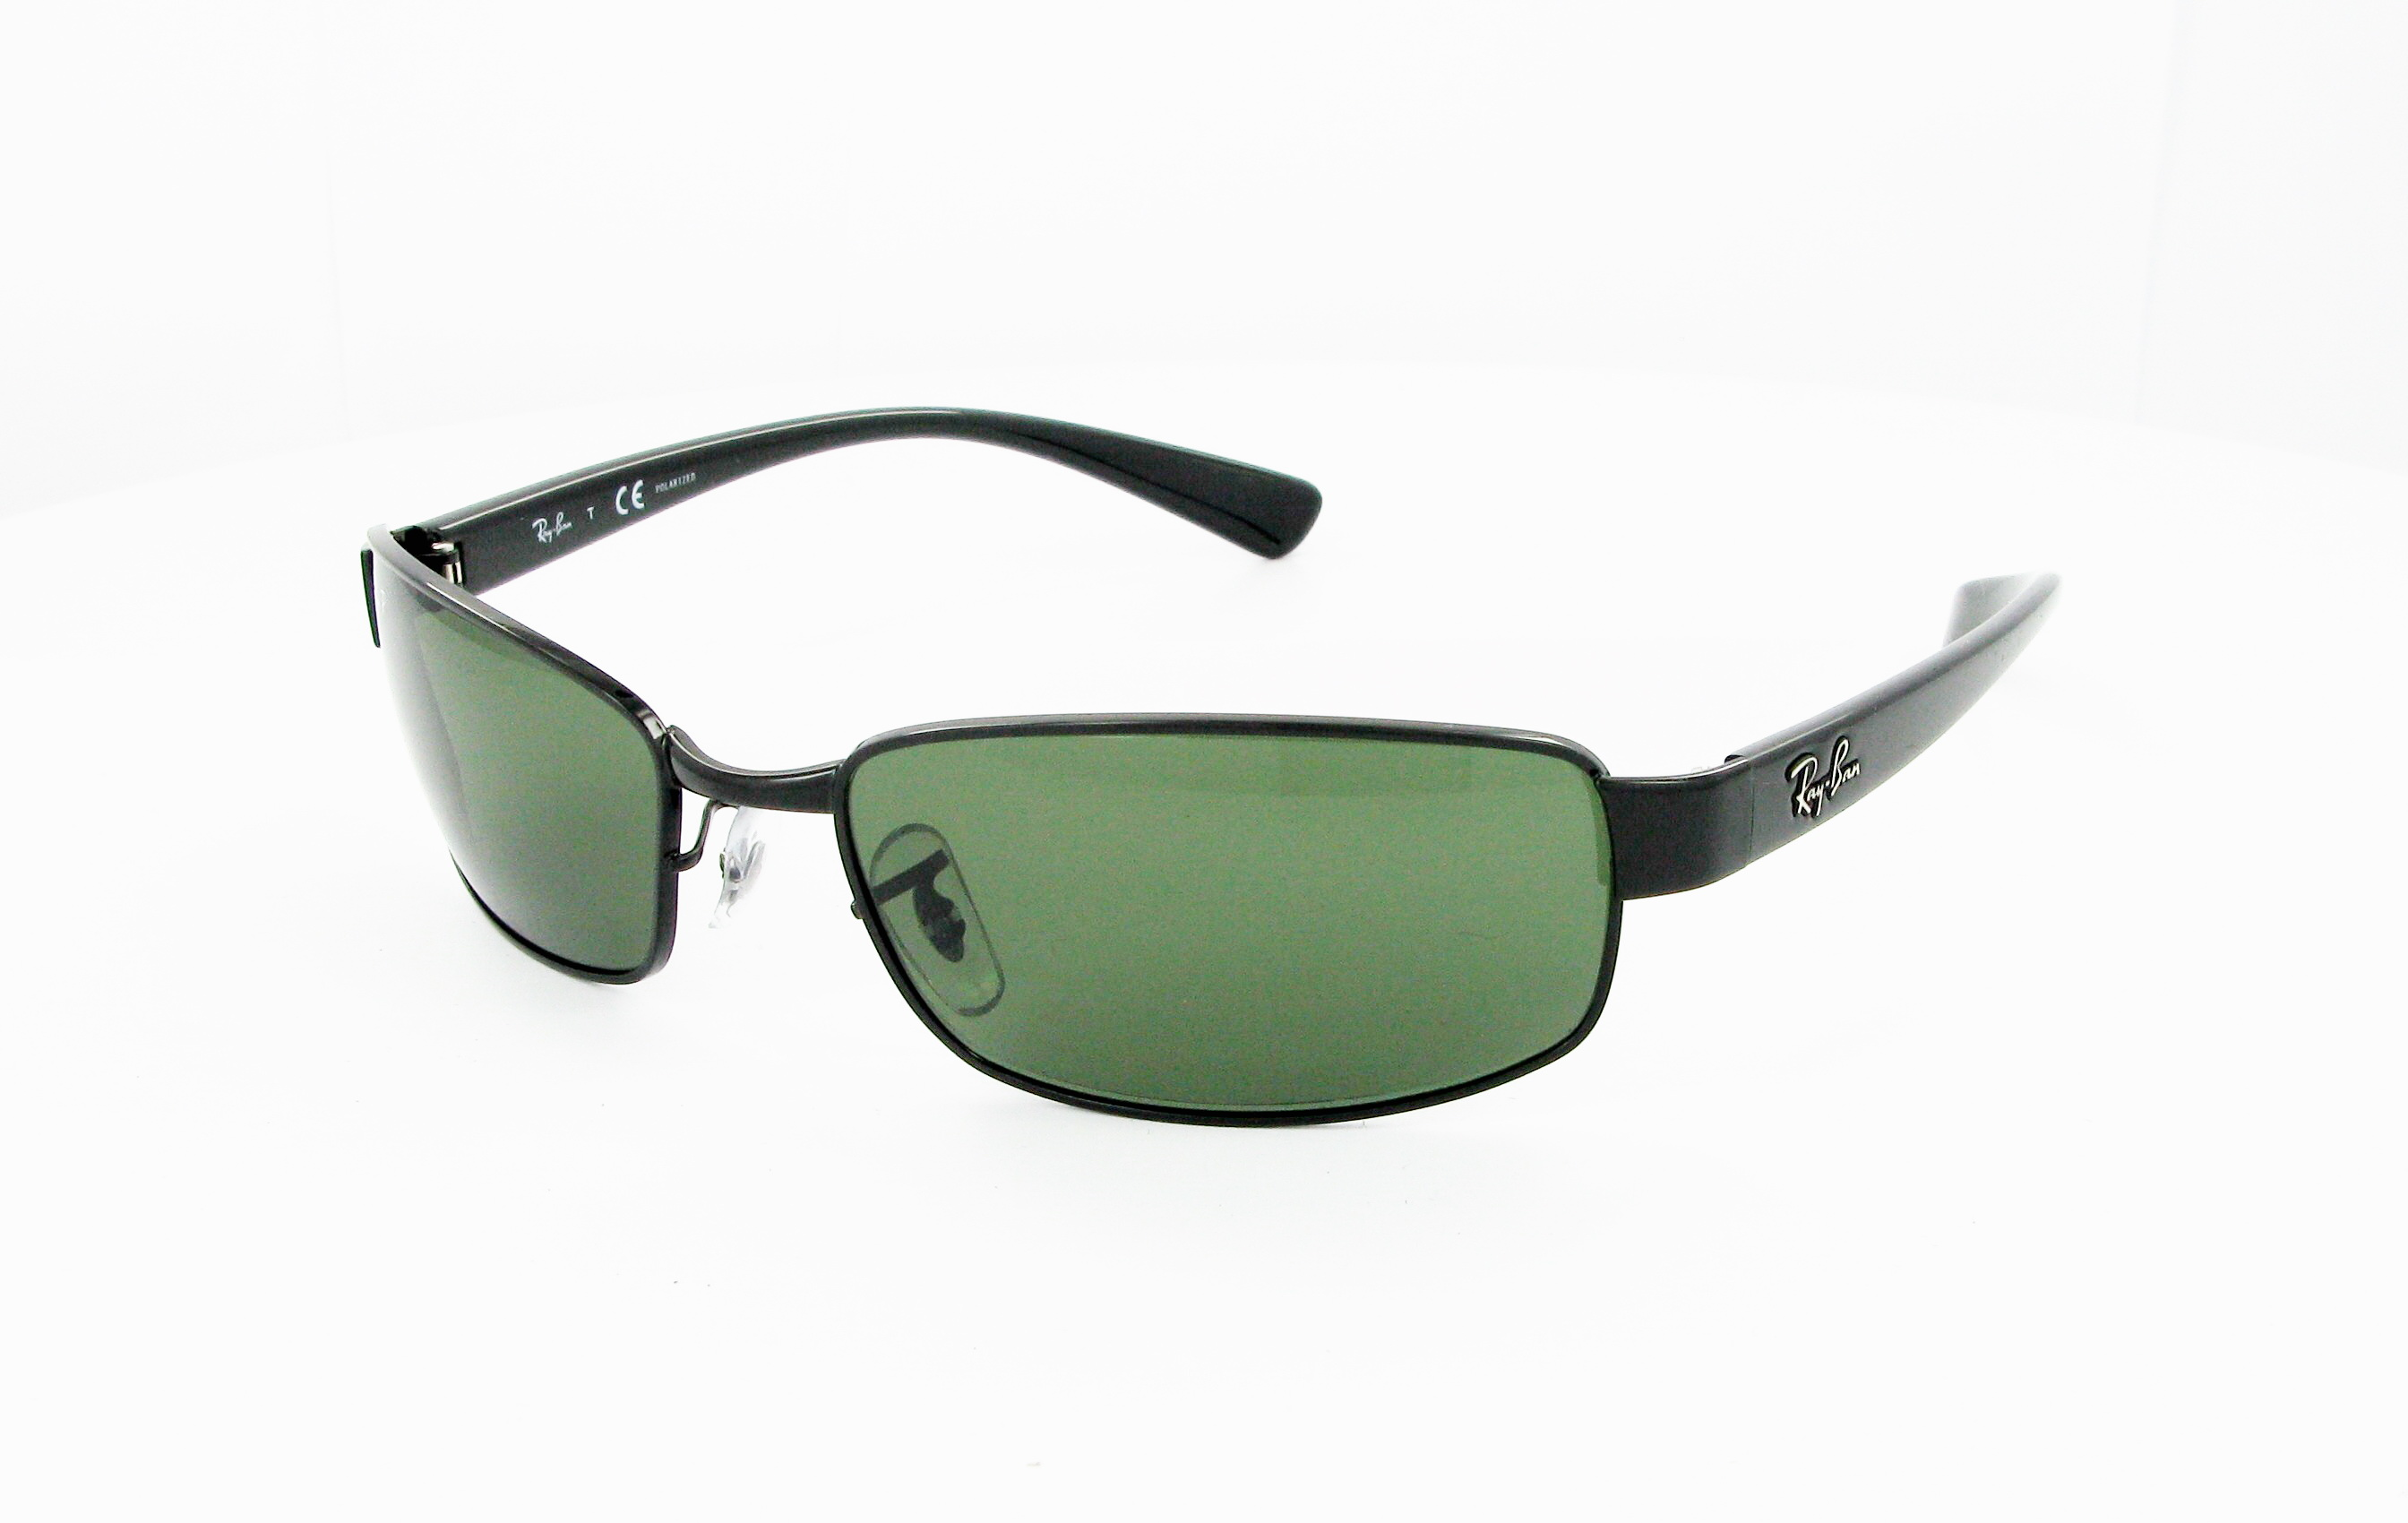 0f8d64109d3 Ray Ban Rb 3364 59 17 « Heritage Malta